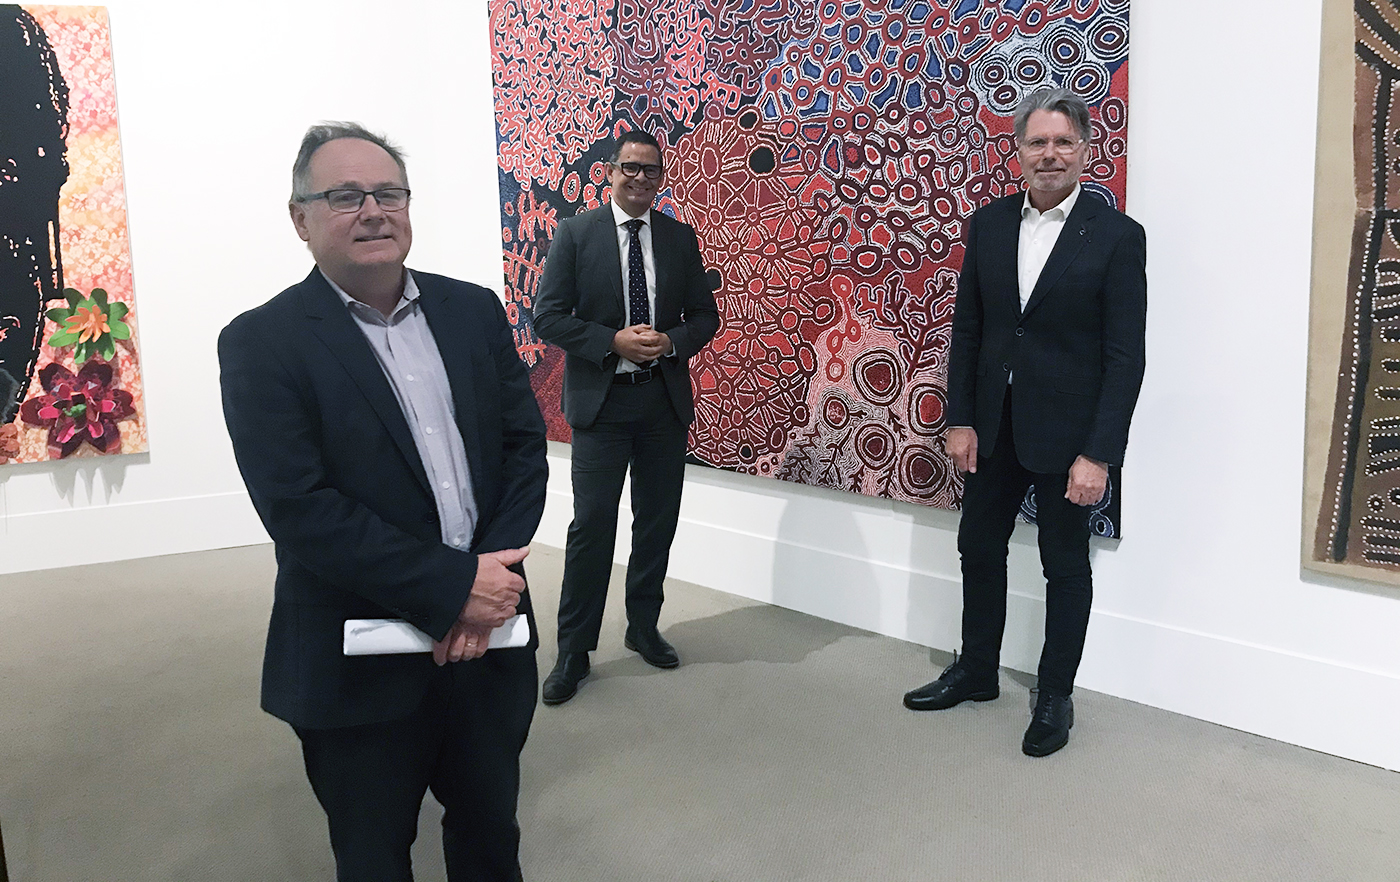 Culture and Arts Minister David Templeman, Aboriginal Affairs Minister Ben Wyatt and AGWA Foundation Chair, Warwick Hemsley in the Art Gallery of Western Australia.